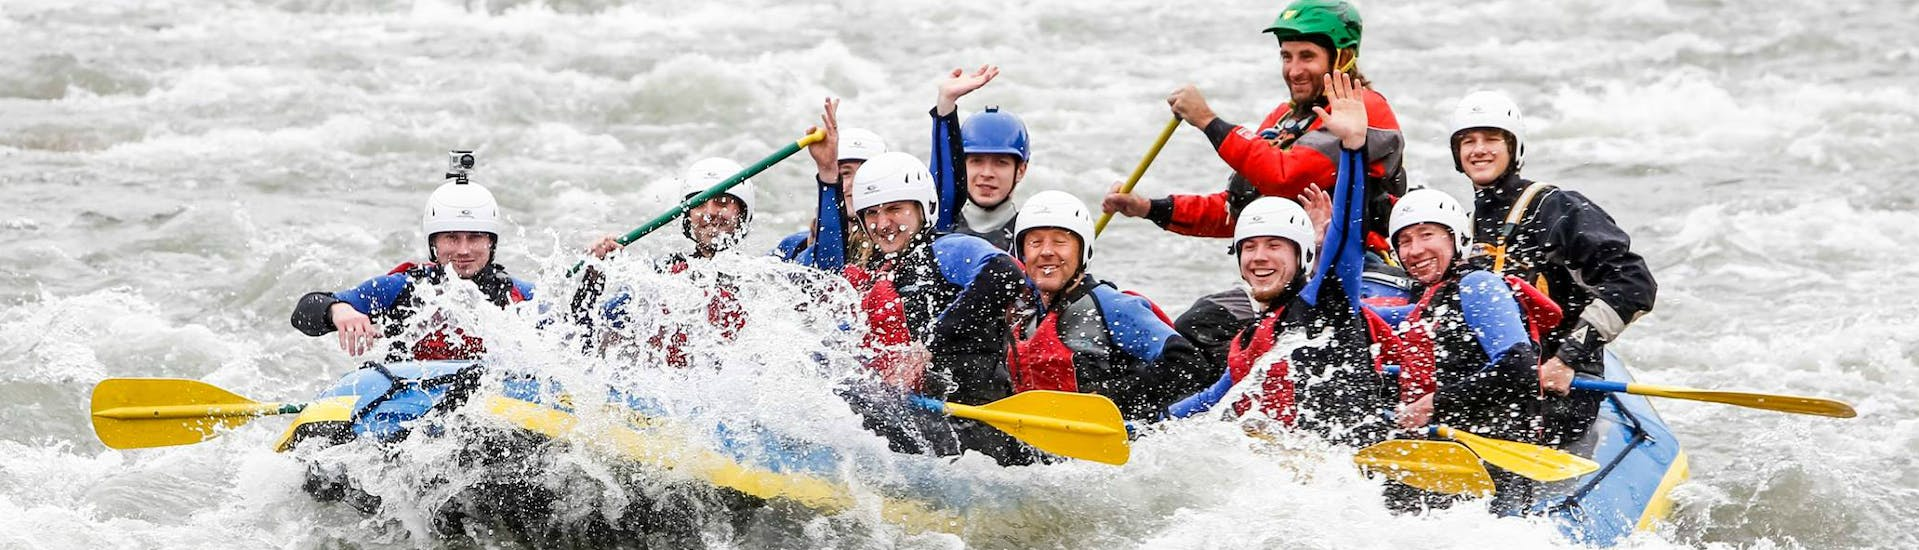 Rafting Day-Tour for Young & Old - Vorderrhein